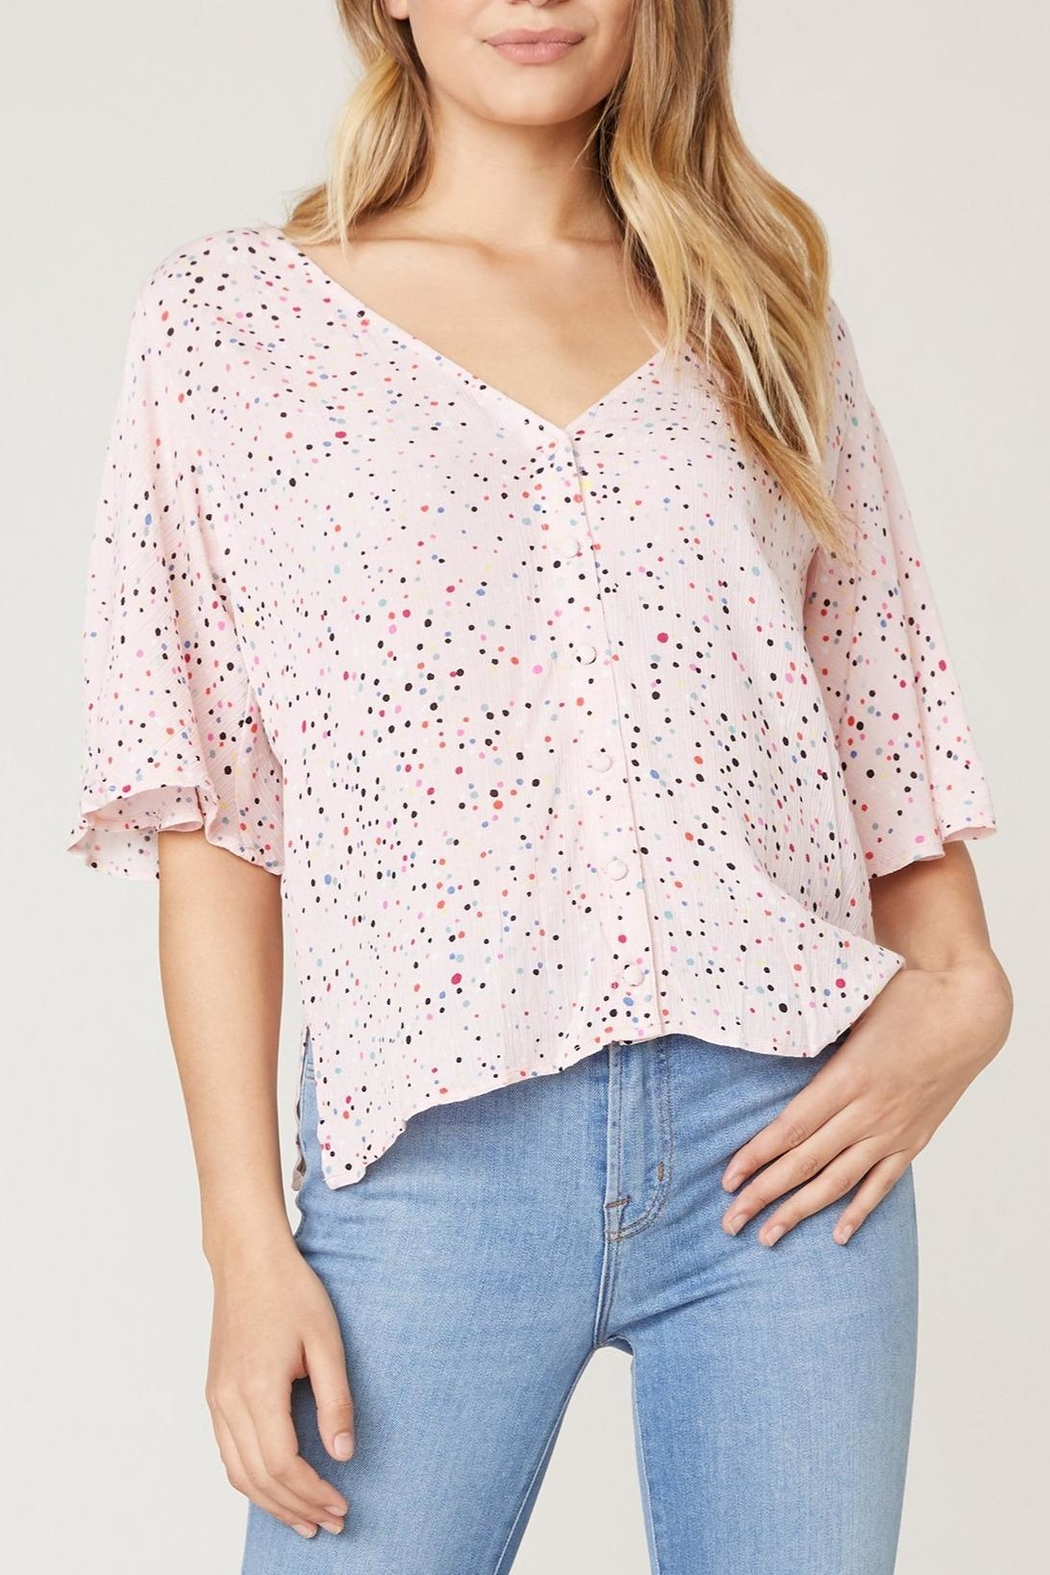 Jack by BB Dakota Surprise Party Blouse - Side Cropped Image